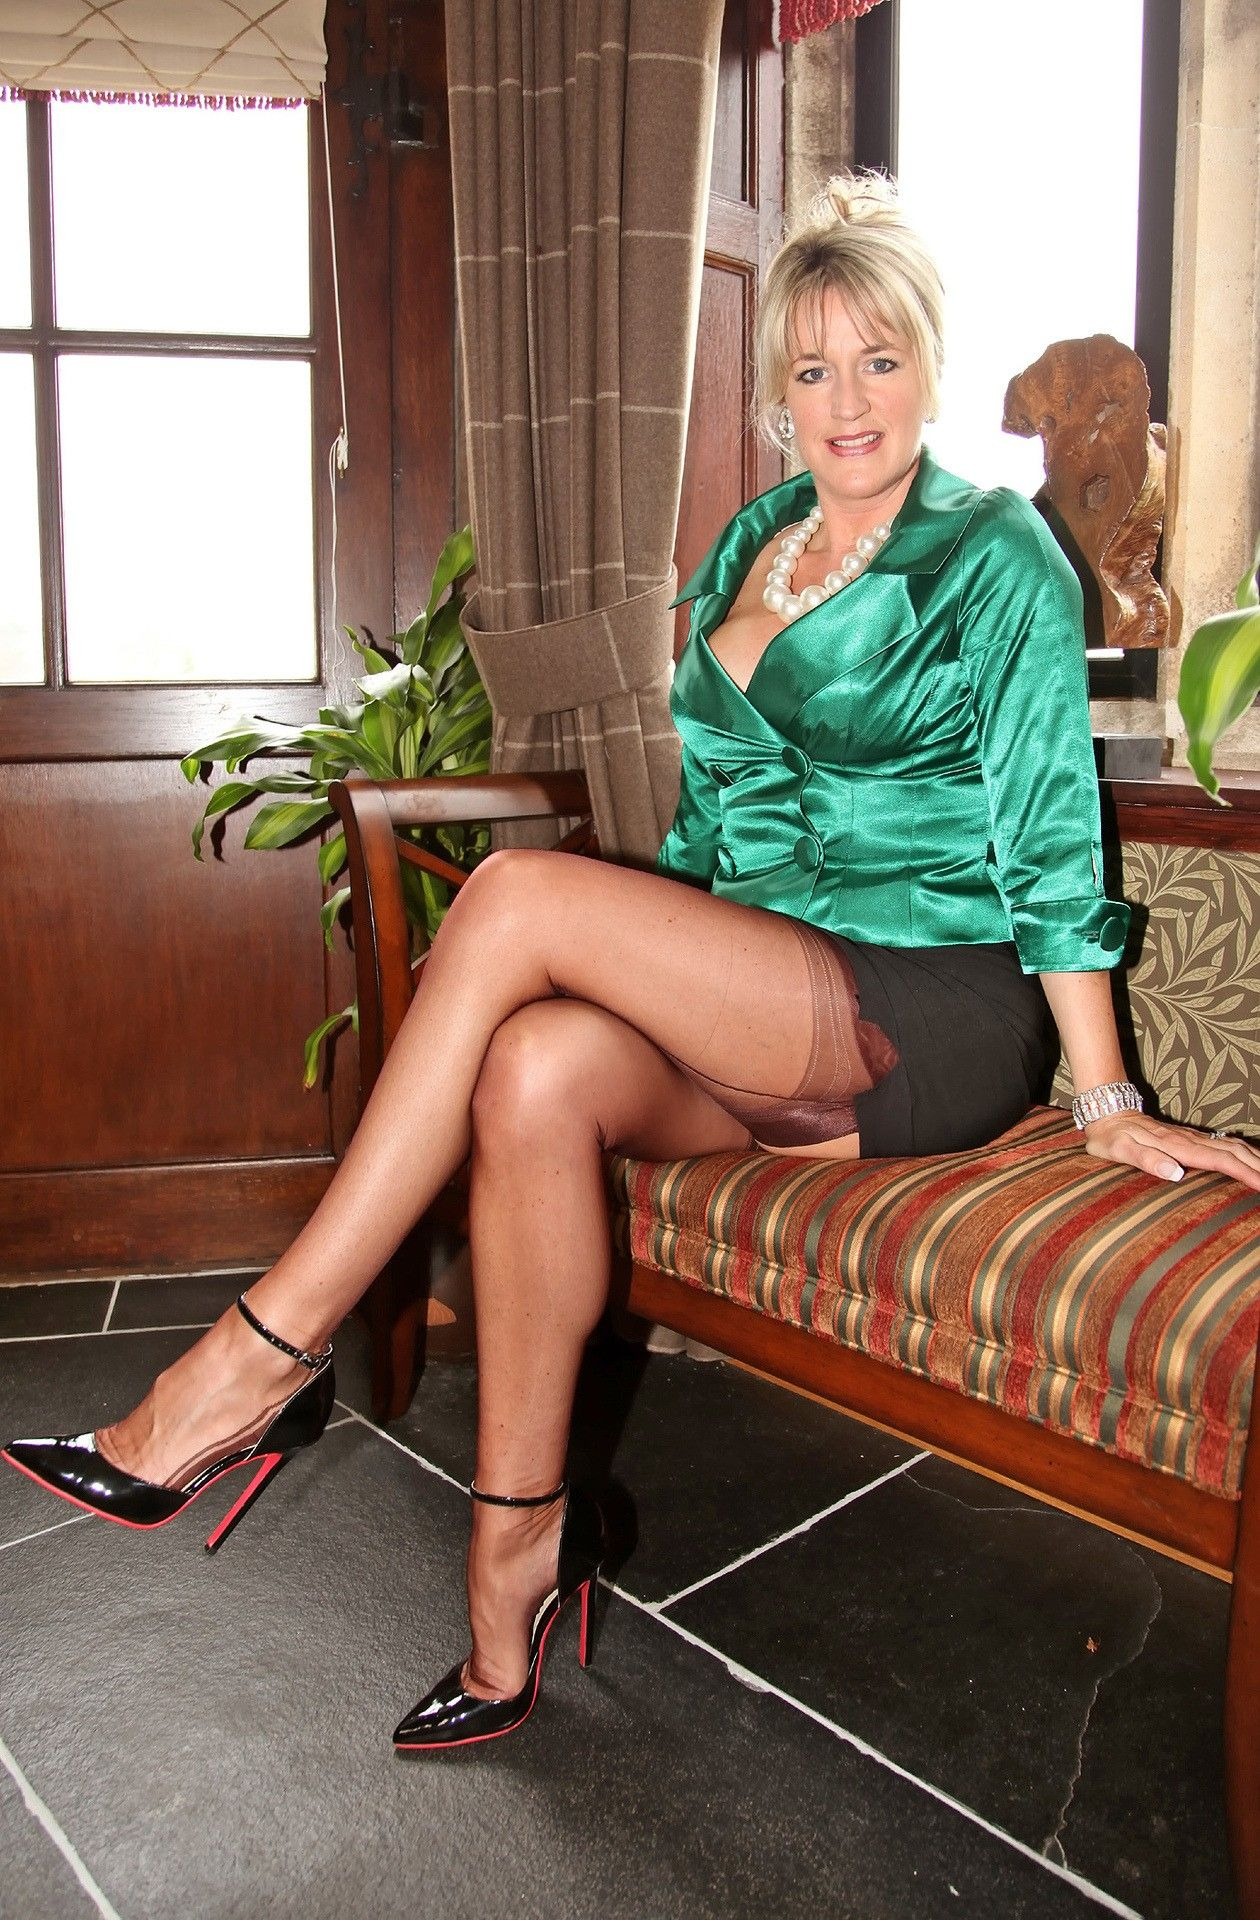 50 Year Old Women Nude Pictures, Images and Stock Photos